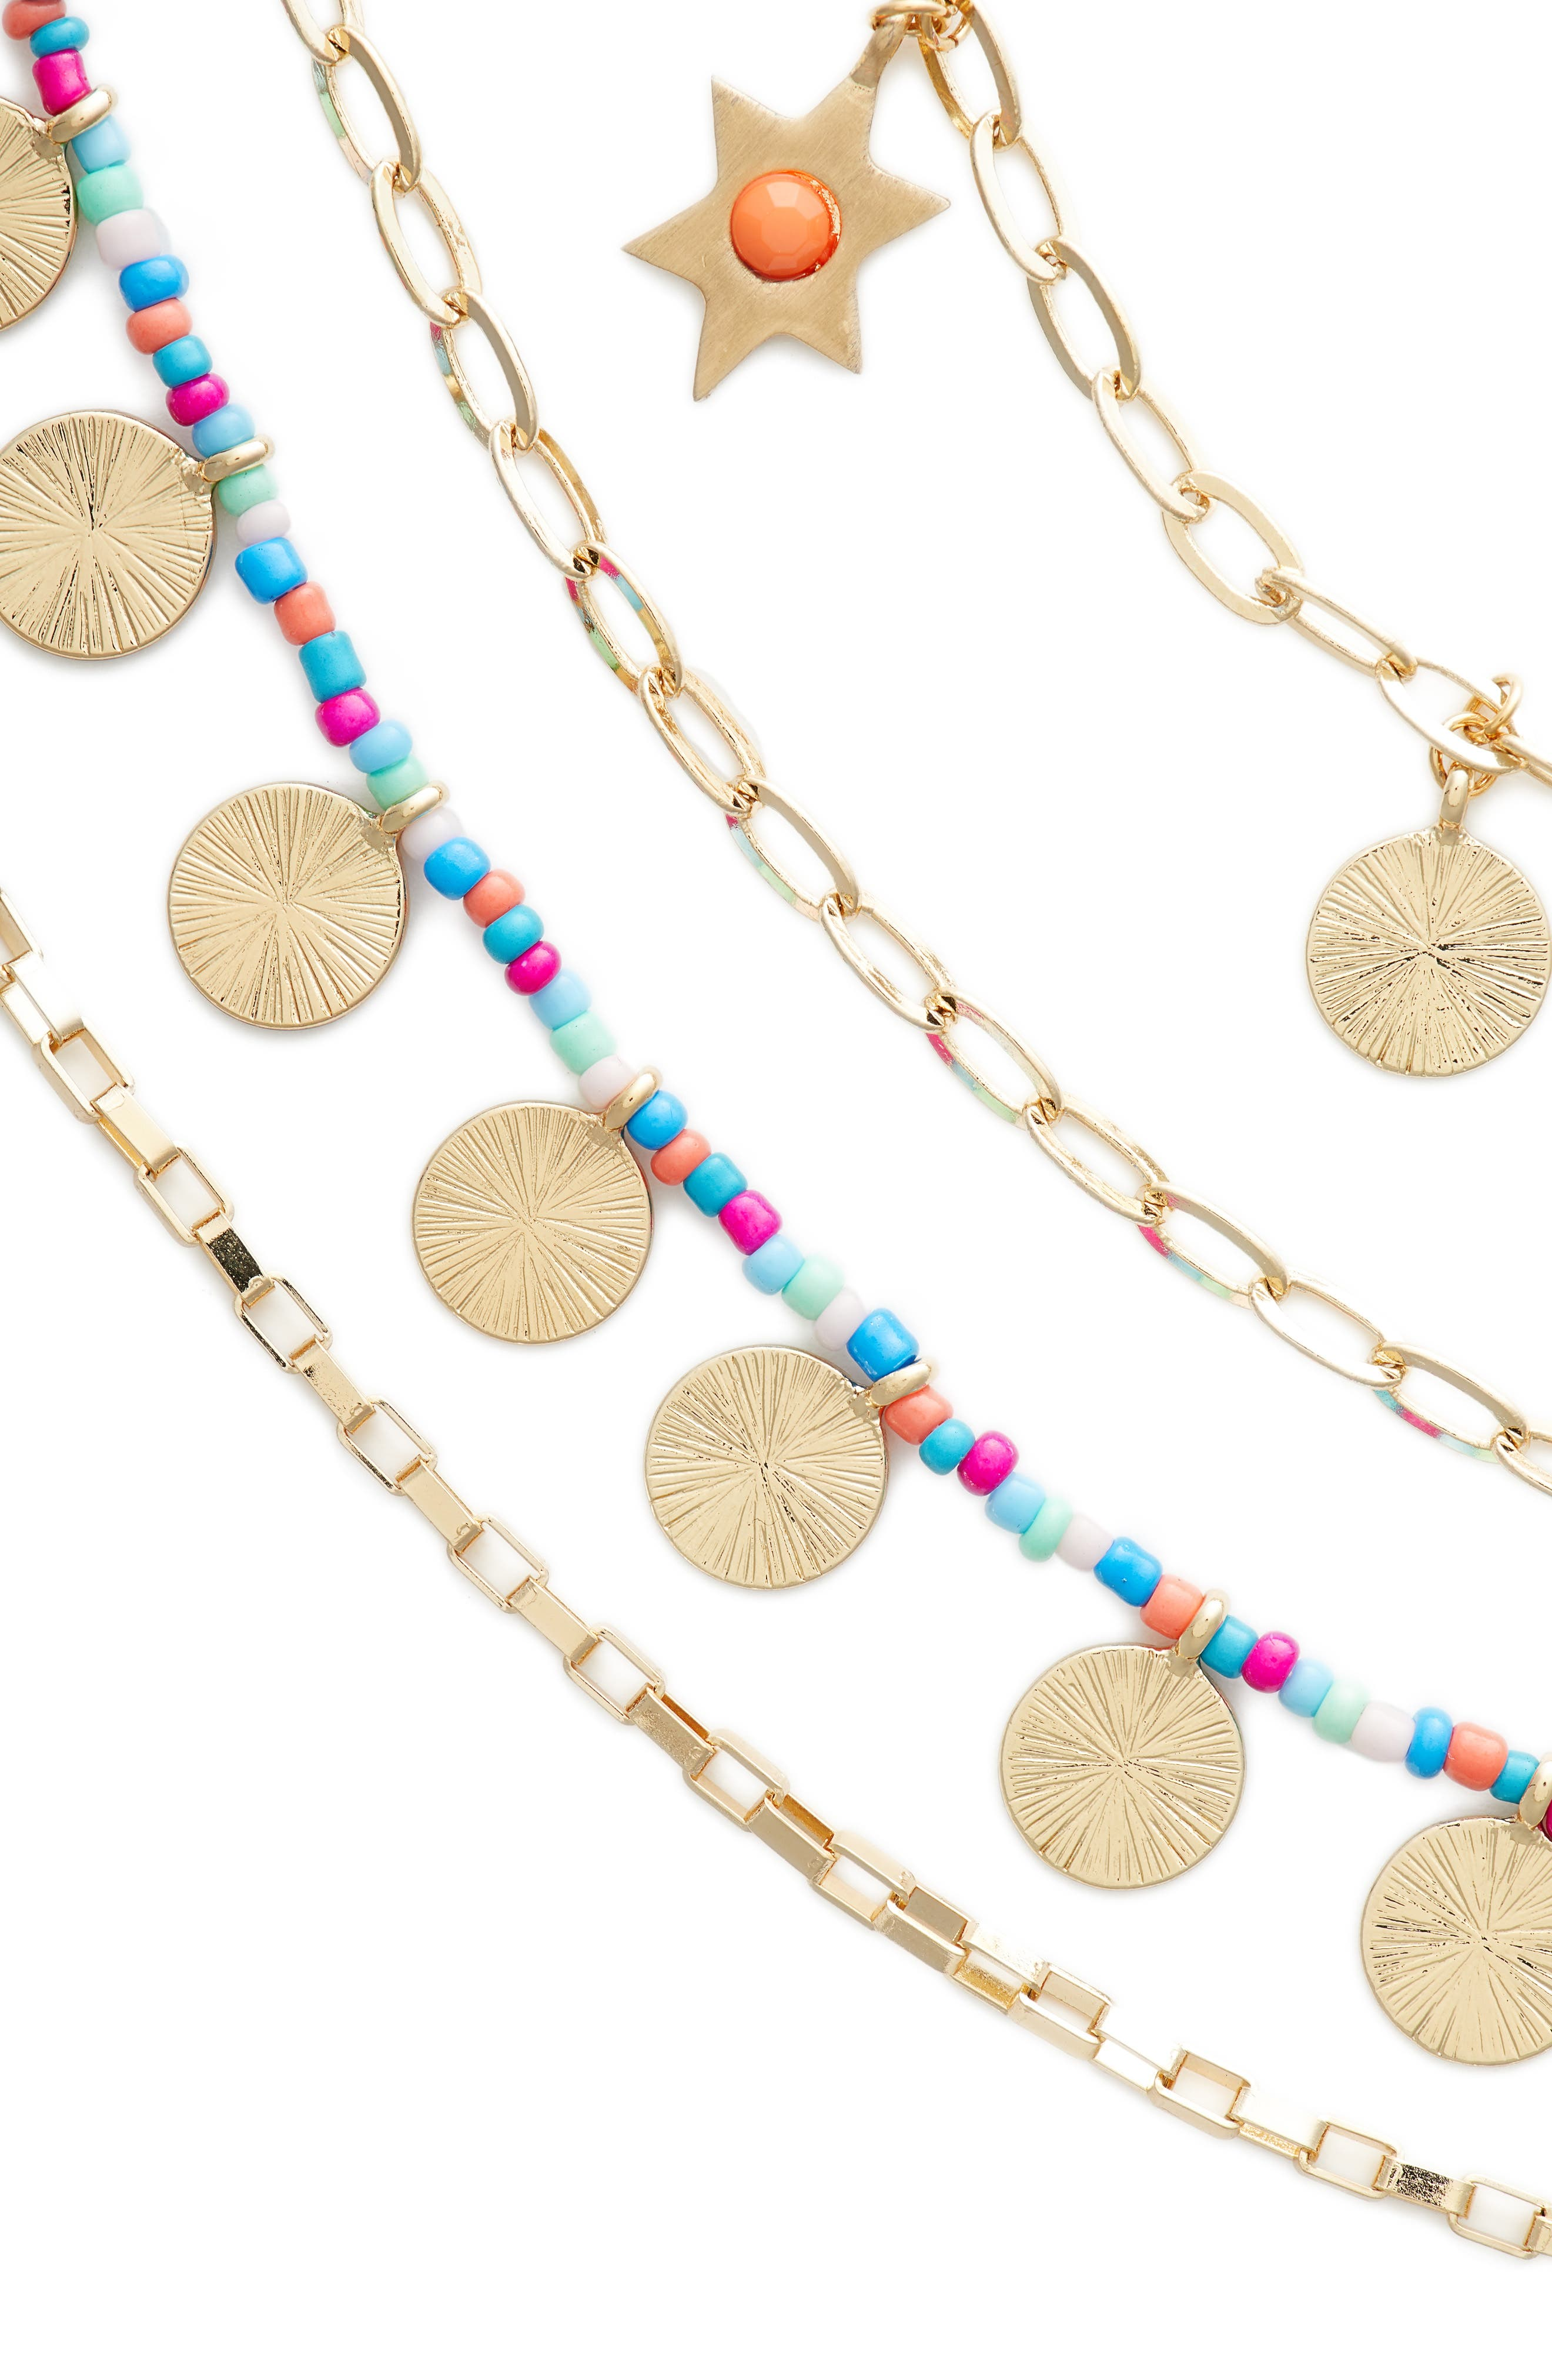 Sole Charm Statement Multistrand Necklace,                             Alternate thumbnail 2, color,                             Bright Multi/ Gold